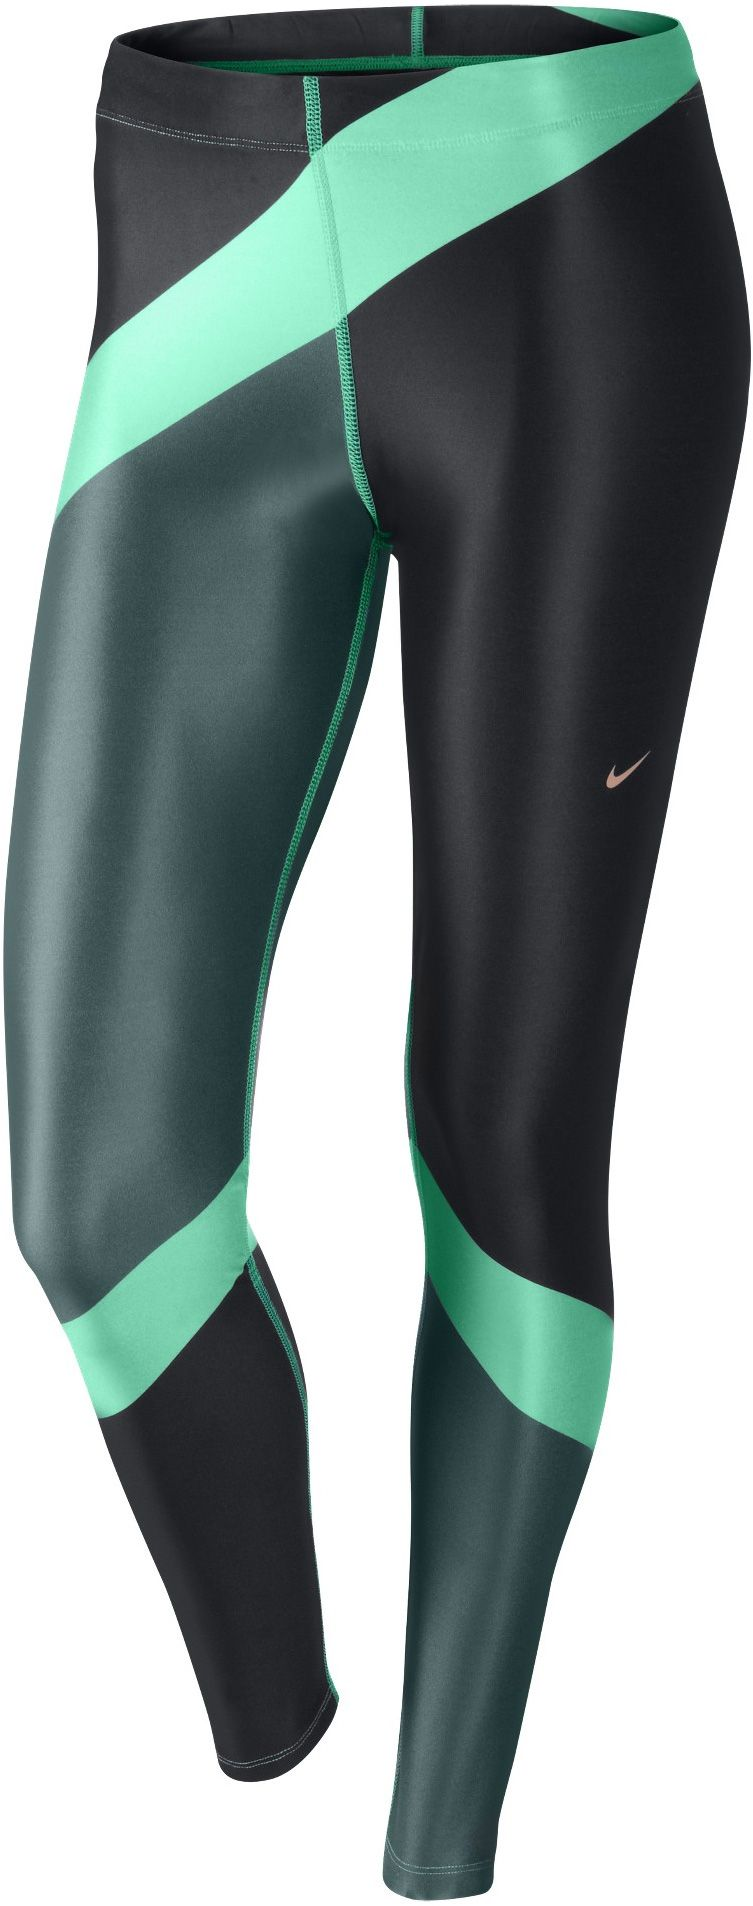 Nike Engineered Print Tight - Womens Make sure to check out my fitness tips, nutrition info and Brazilian Athletic wear at https://ronitaylorfit.com/